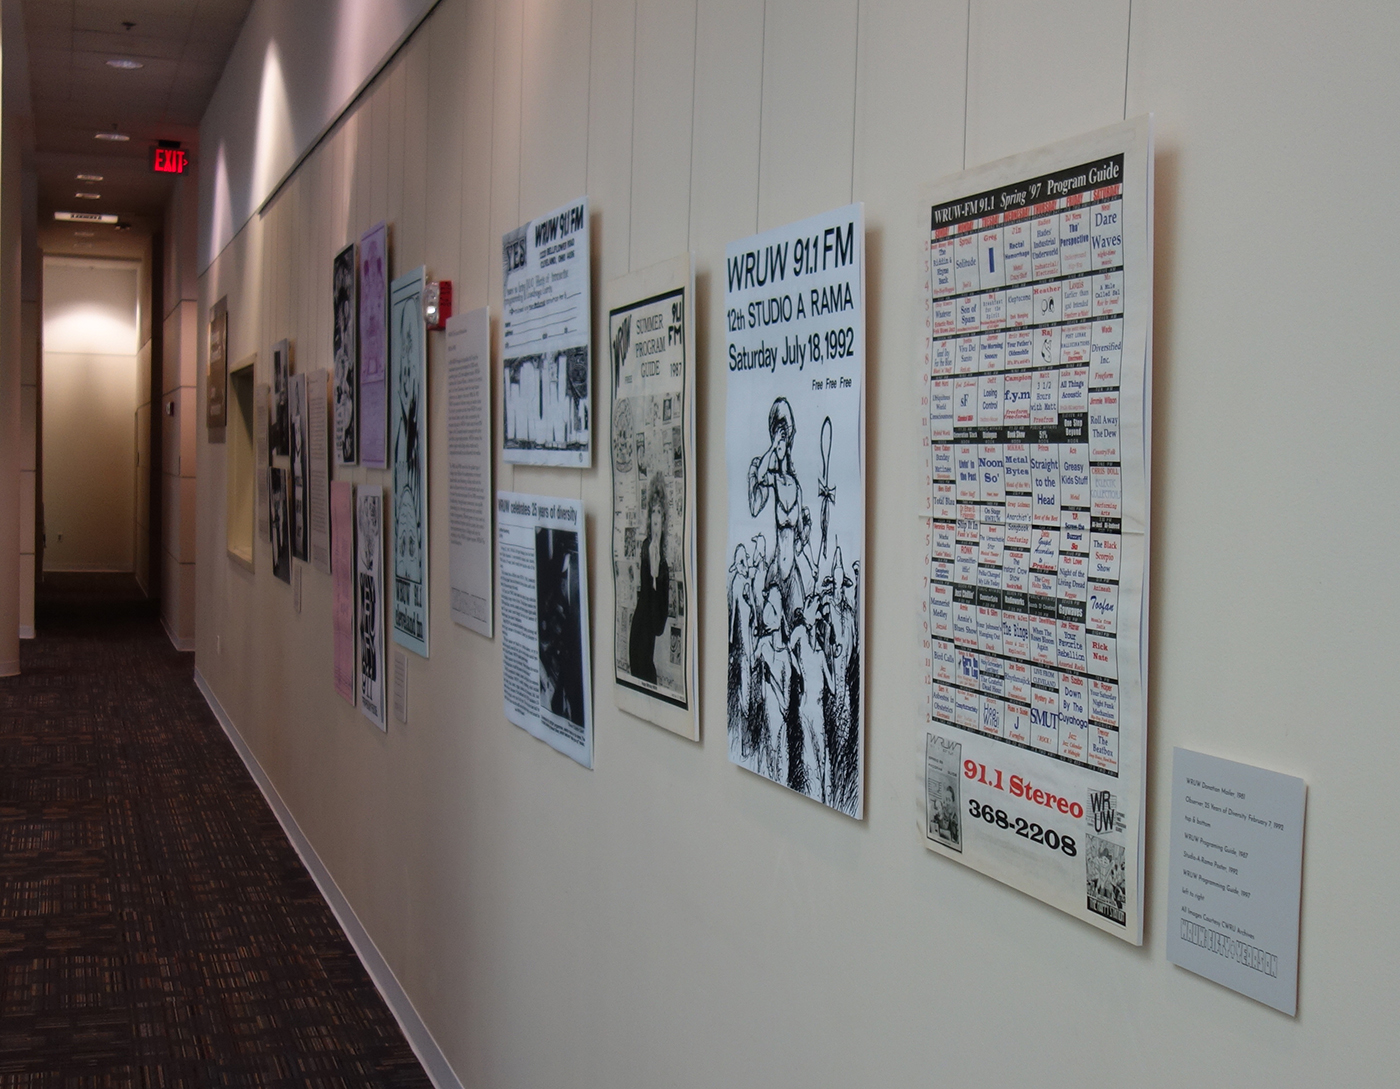 Image of exhibit phsically on view at Kelvin Smith Library.